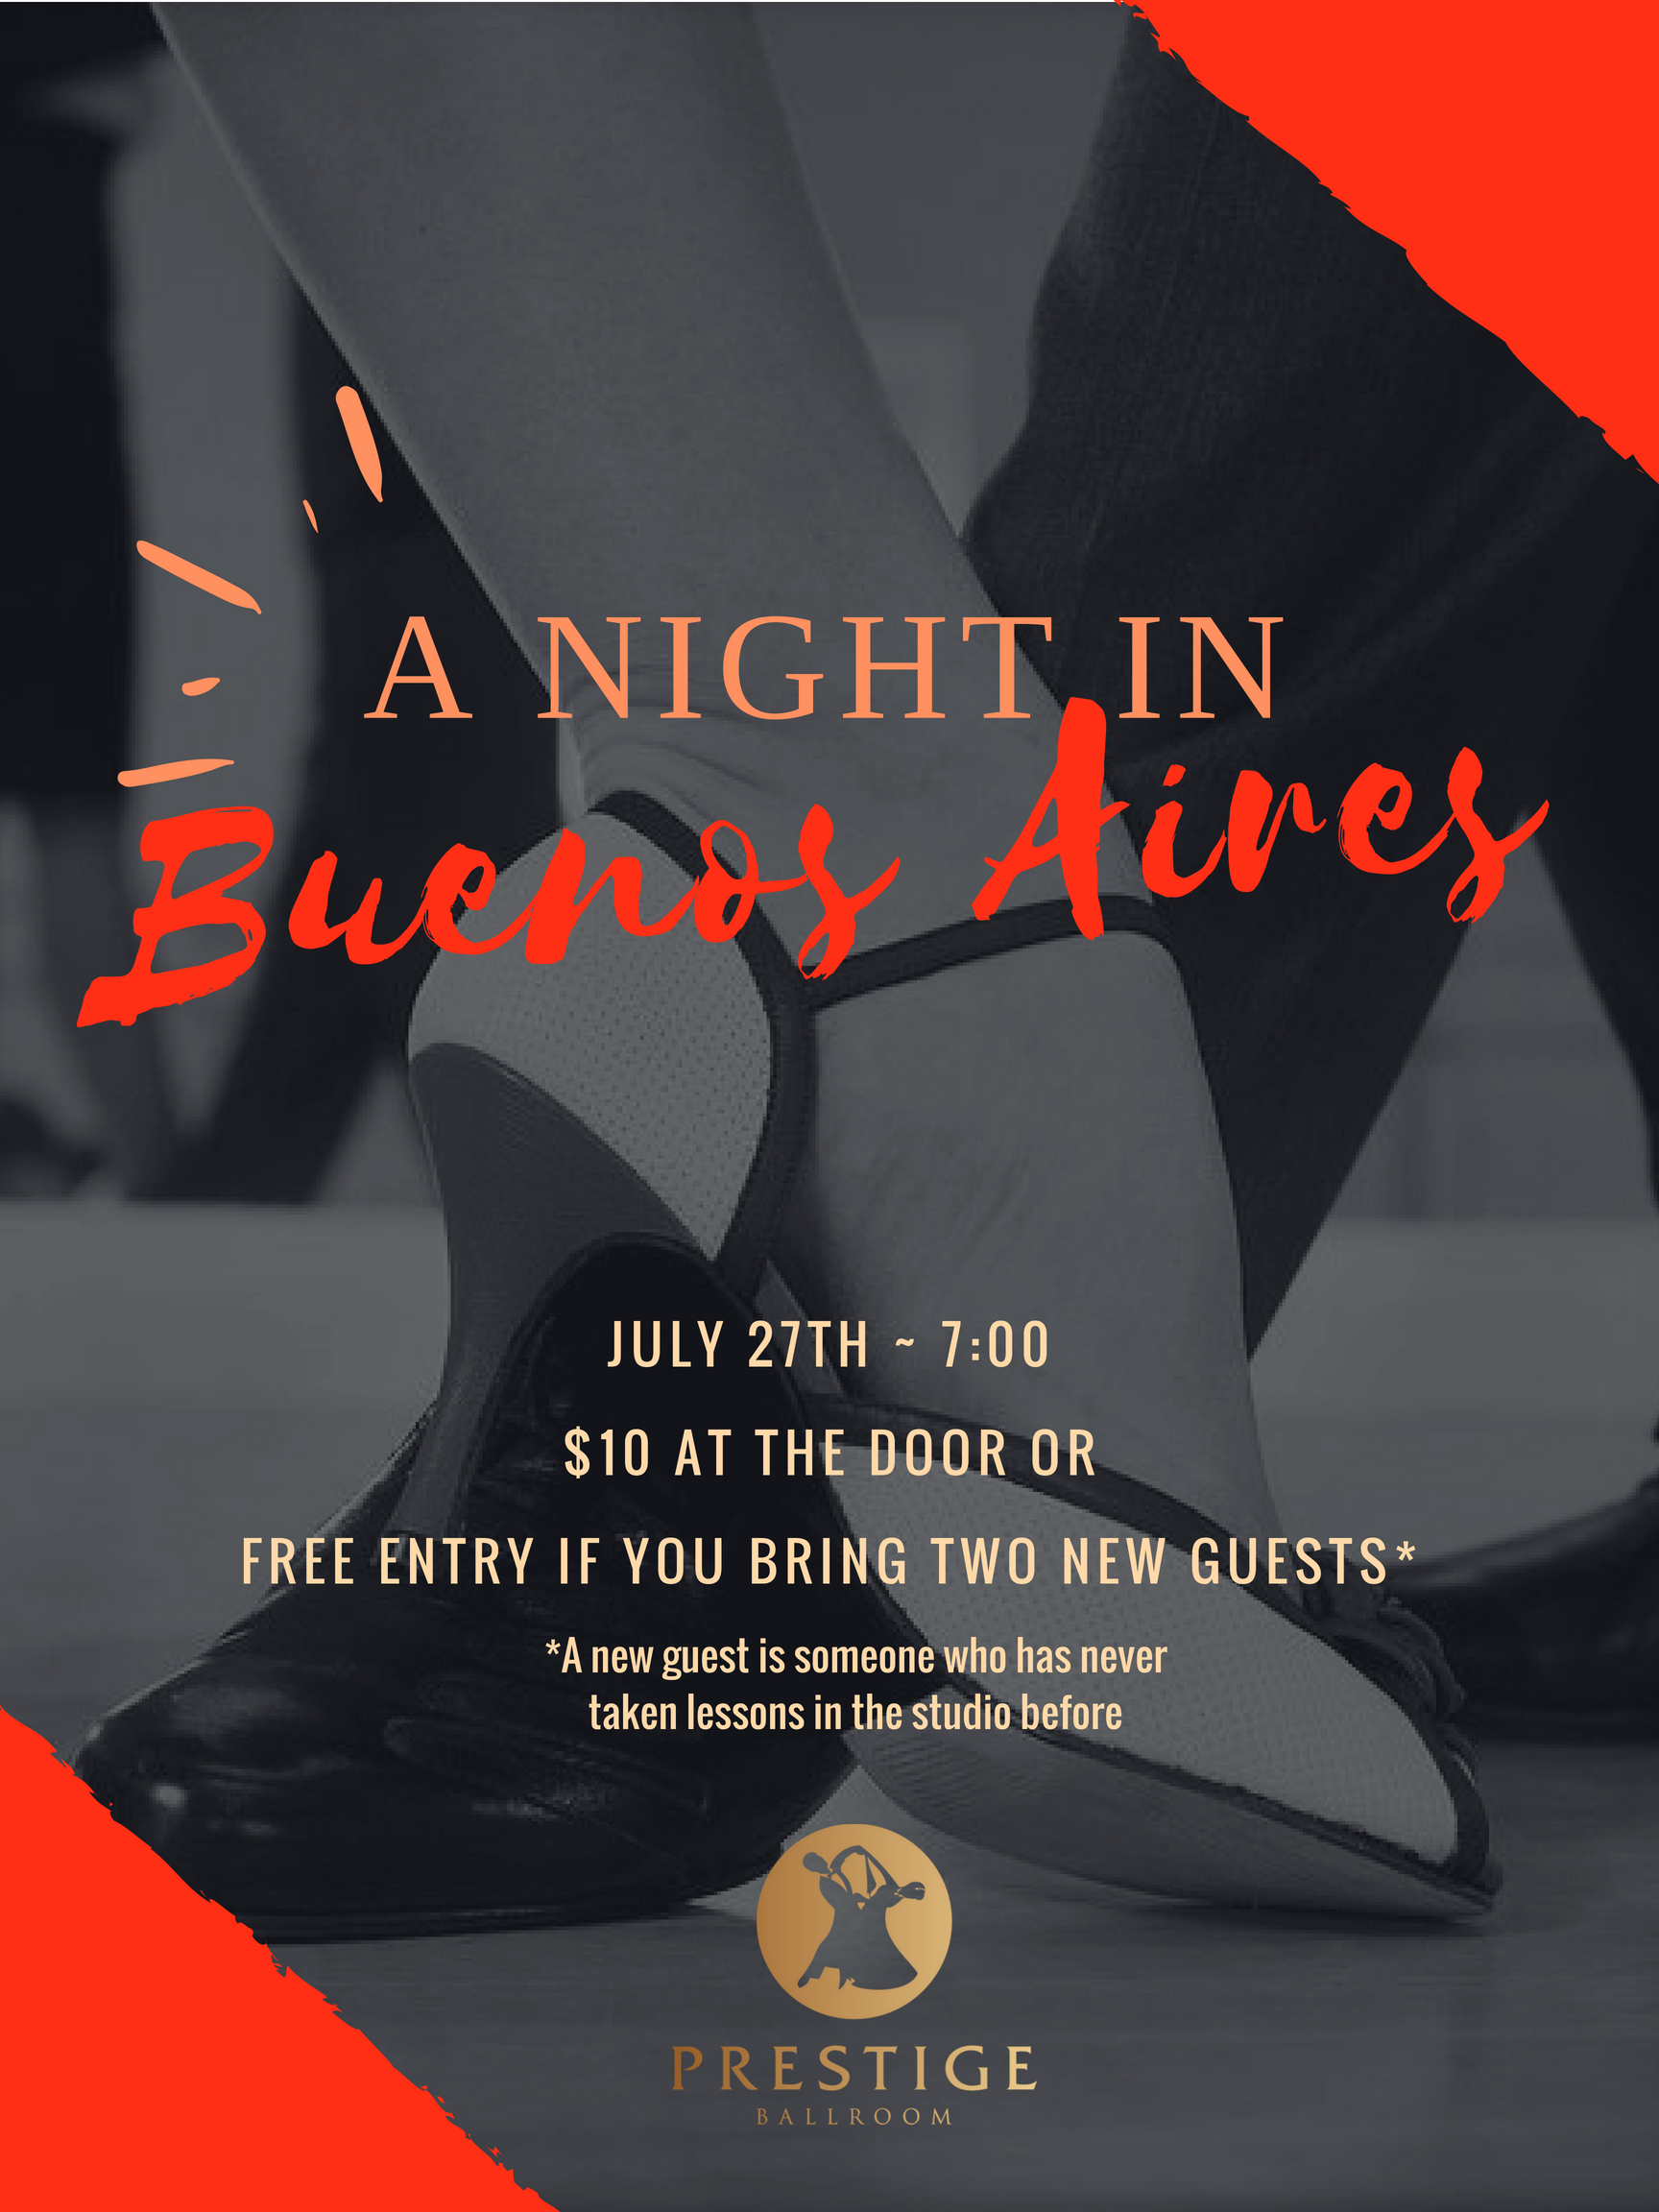 A Night in Buenos Aires: An Argentine Tango Party